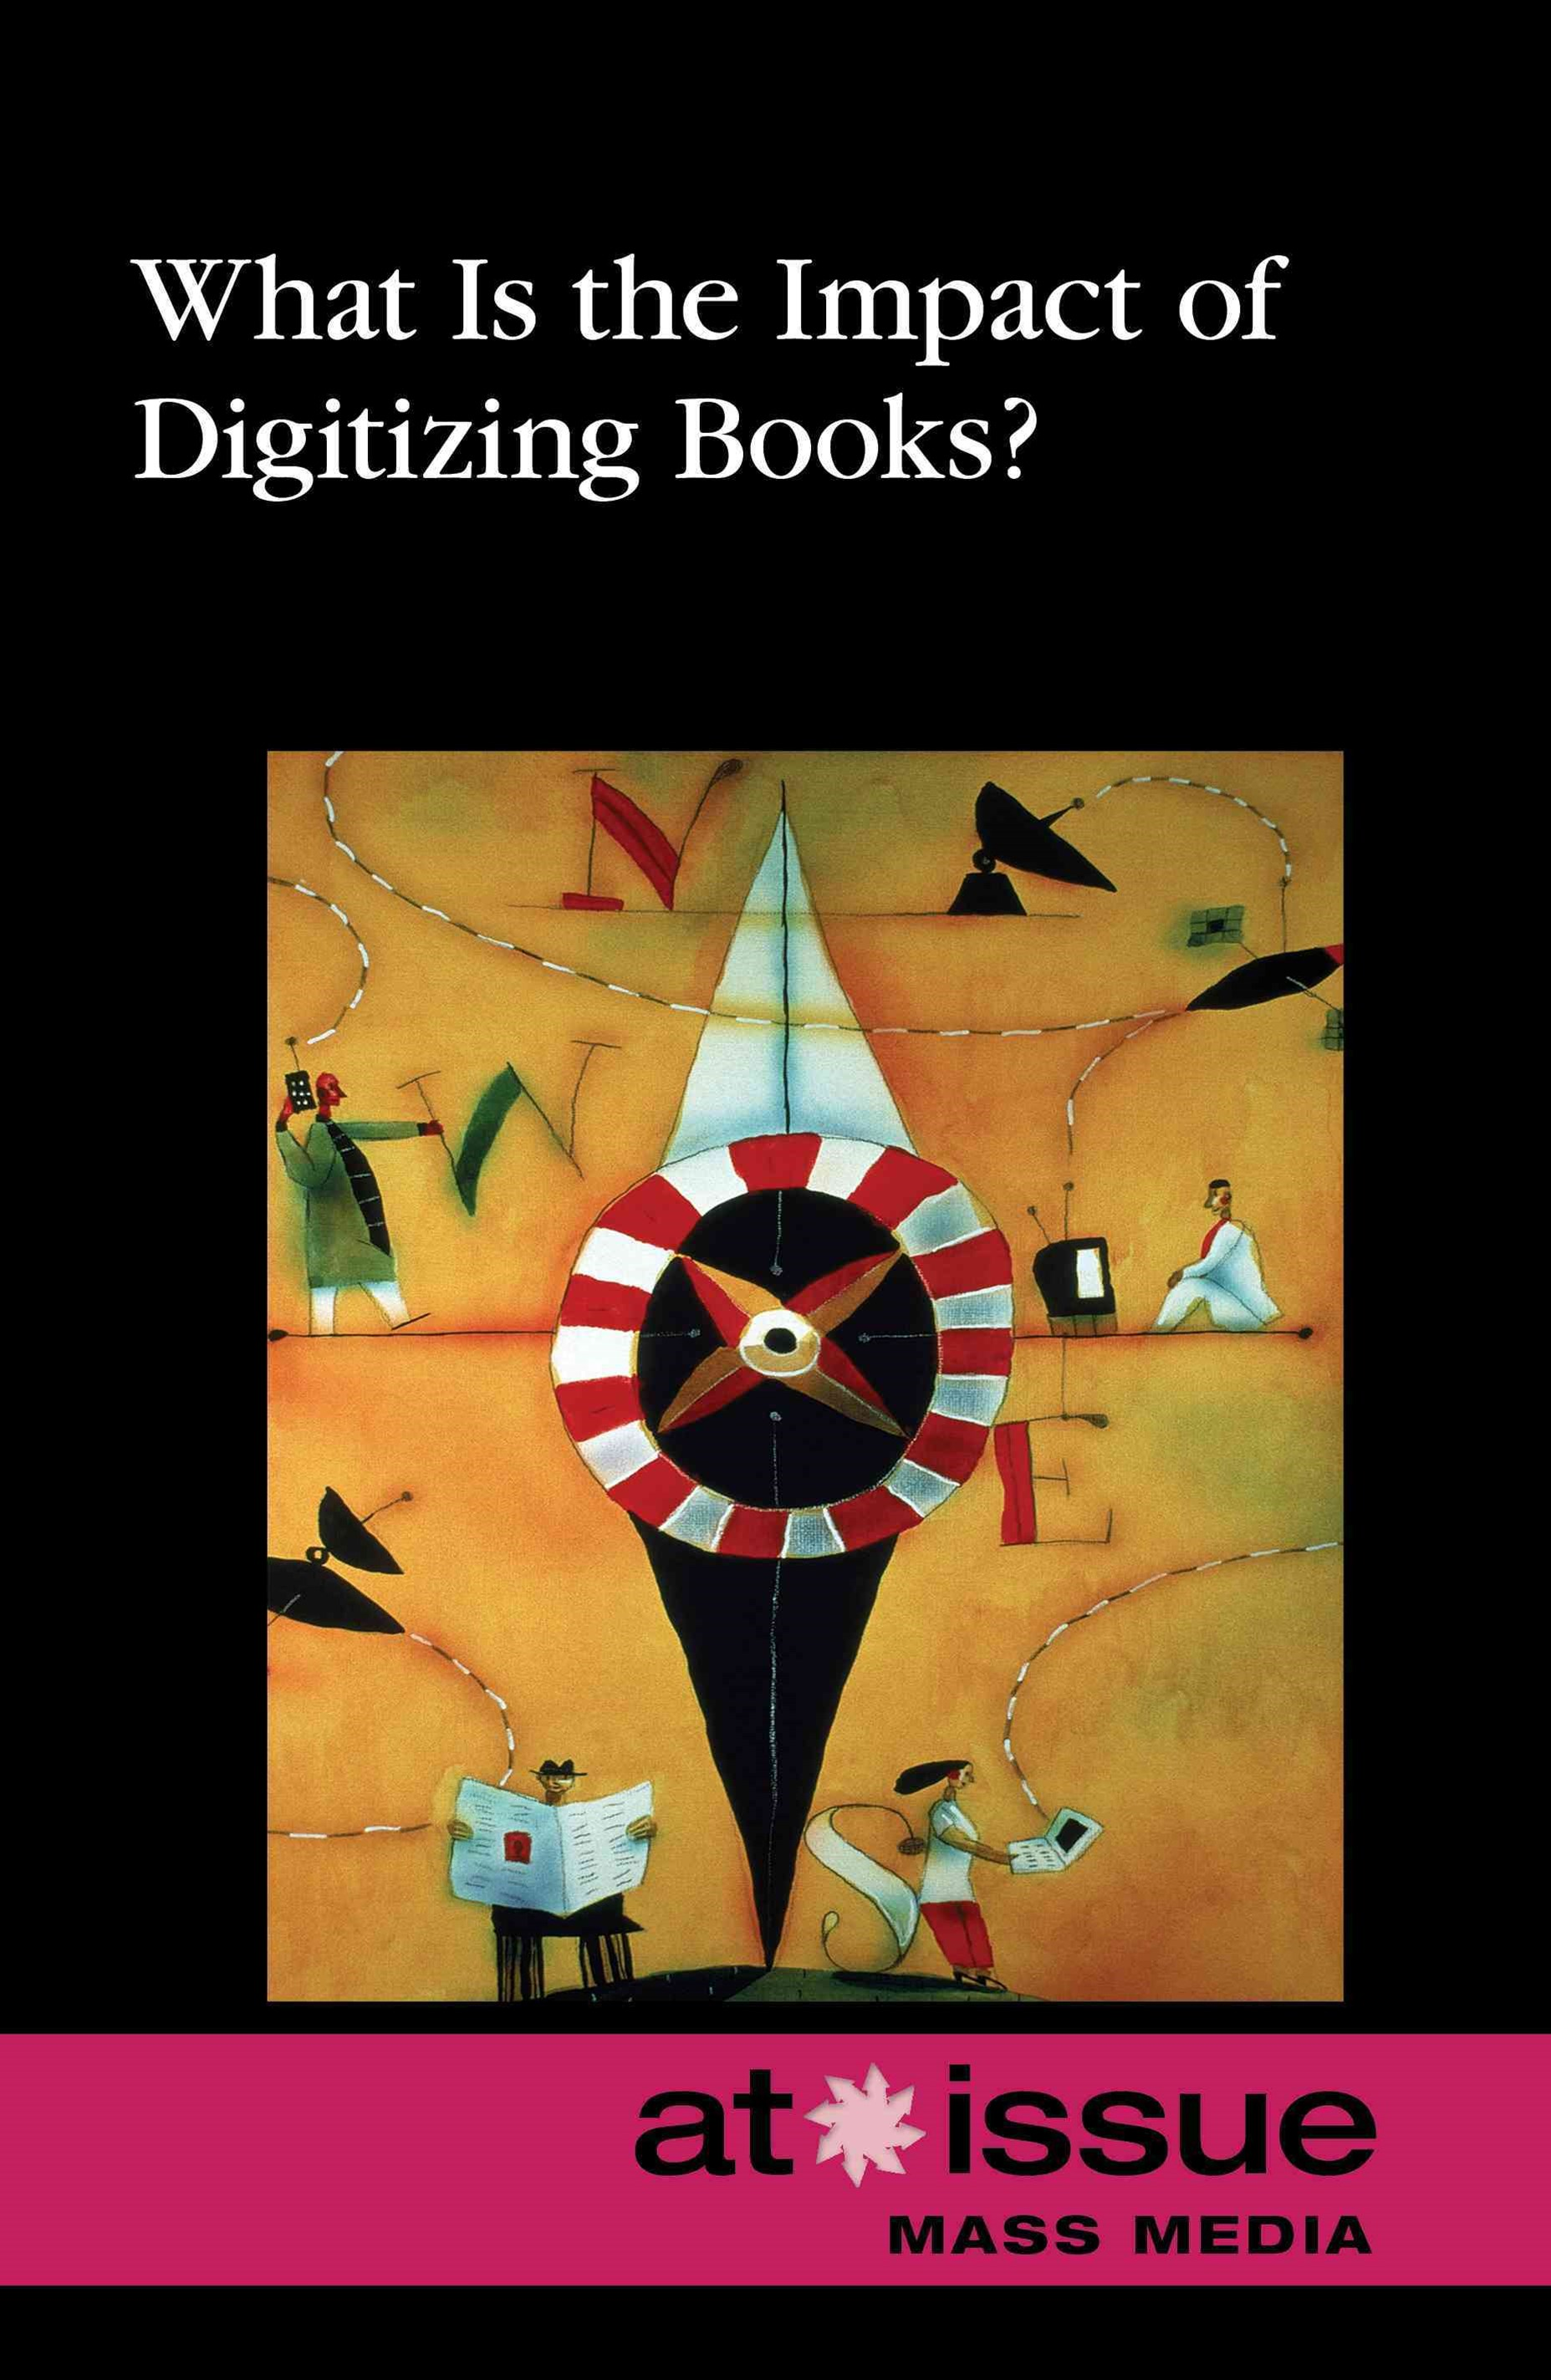 What Is the Impact of Digitizing Books?